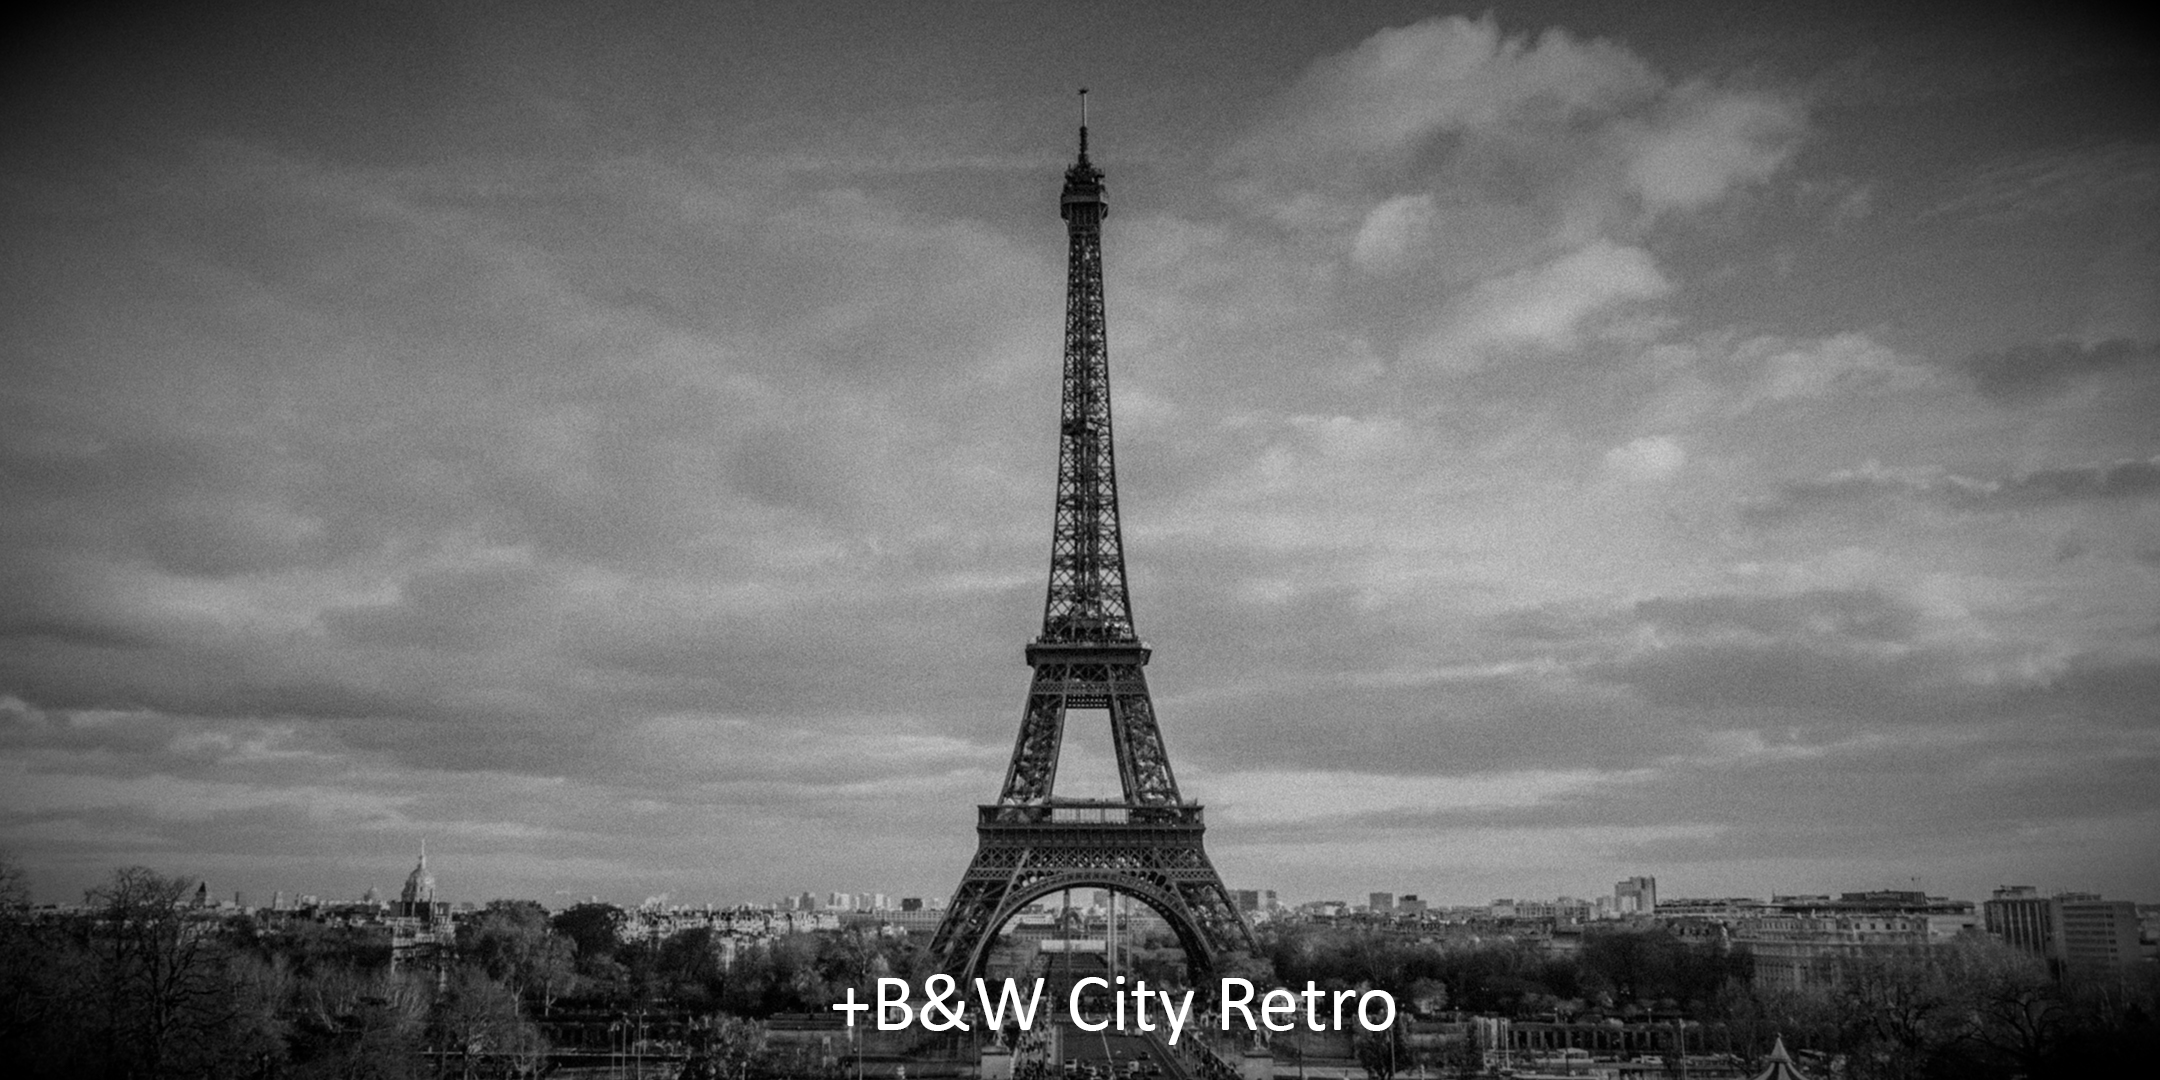 + B&W City Retro.jpg